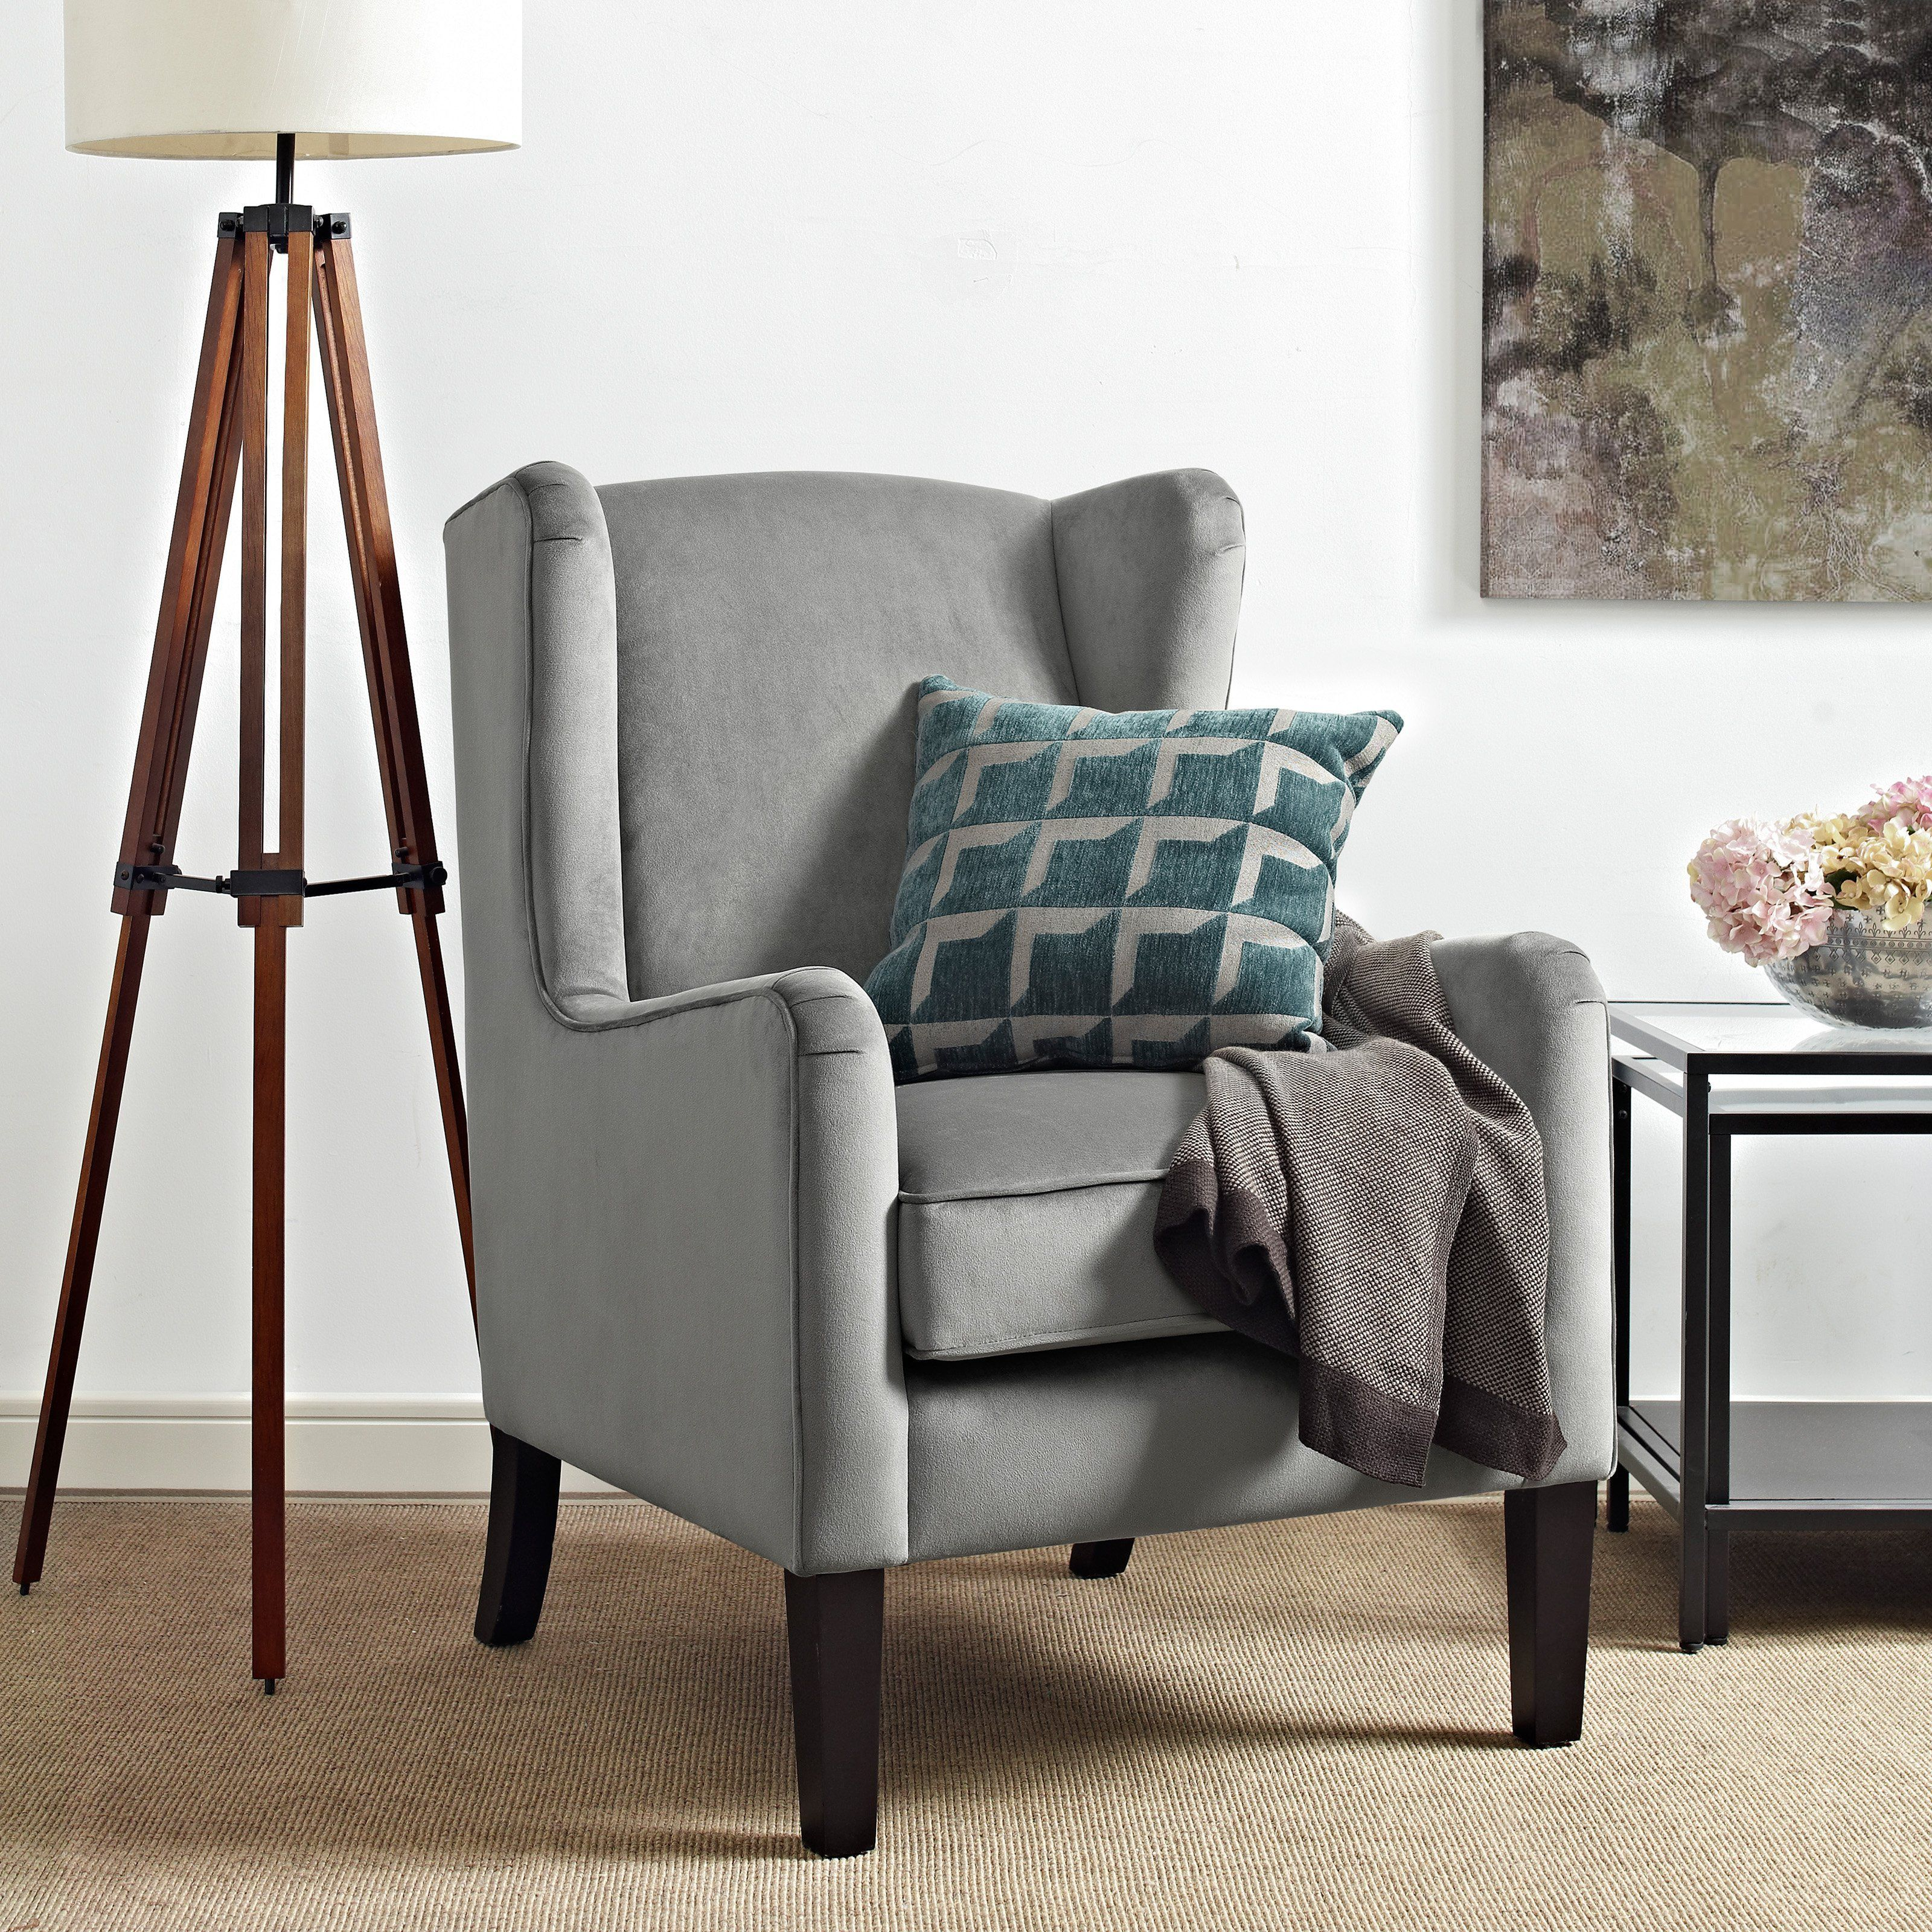 Dorel Living Rossland Wingback Accent Chair - DA7105 | Products ...